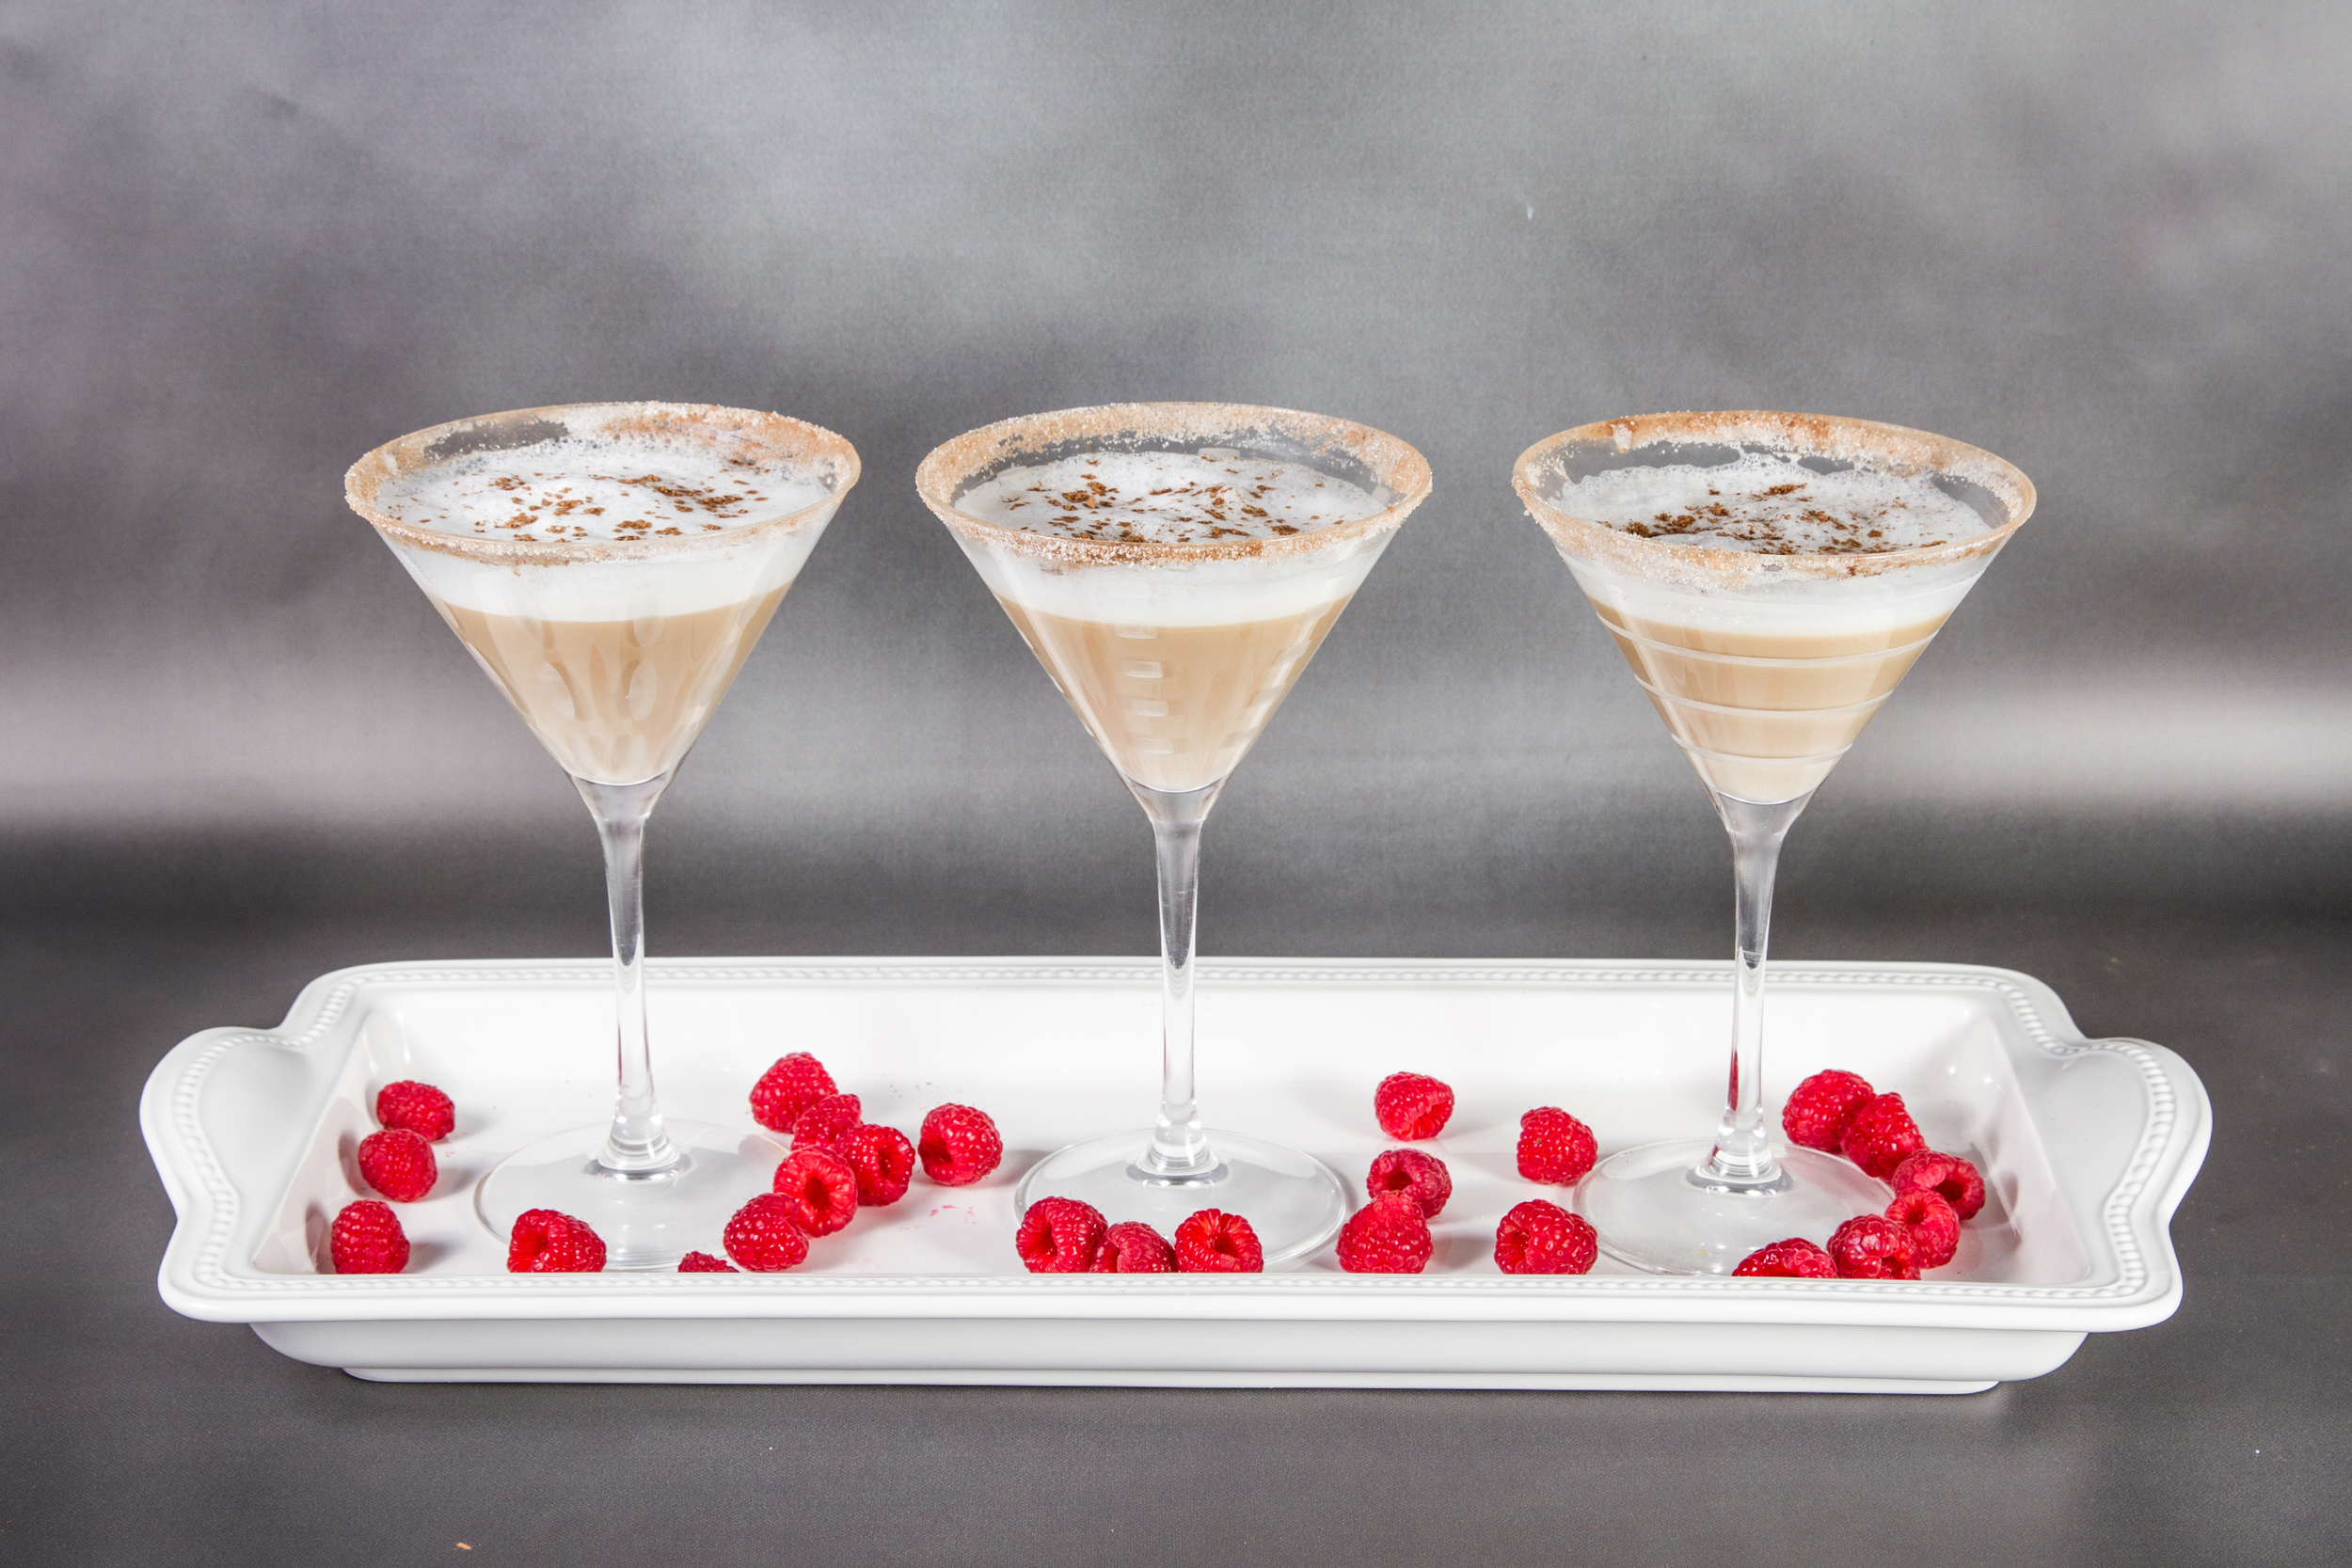 Latte-tini made with Cafe' Luxe stainless steel best milk frother